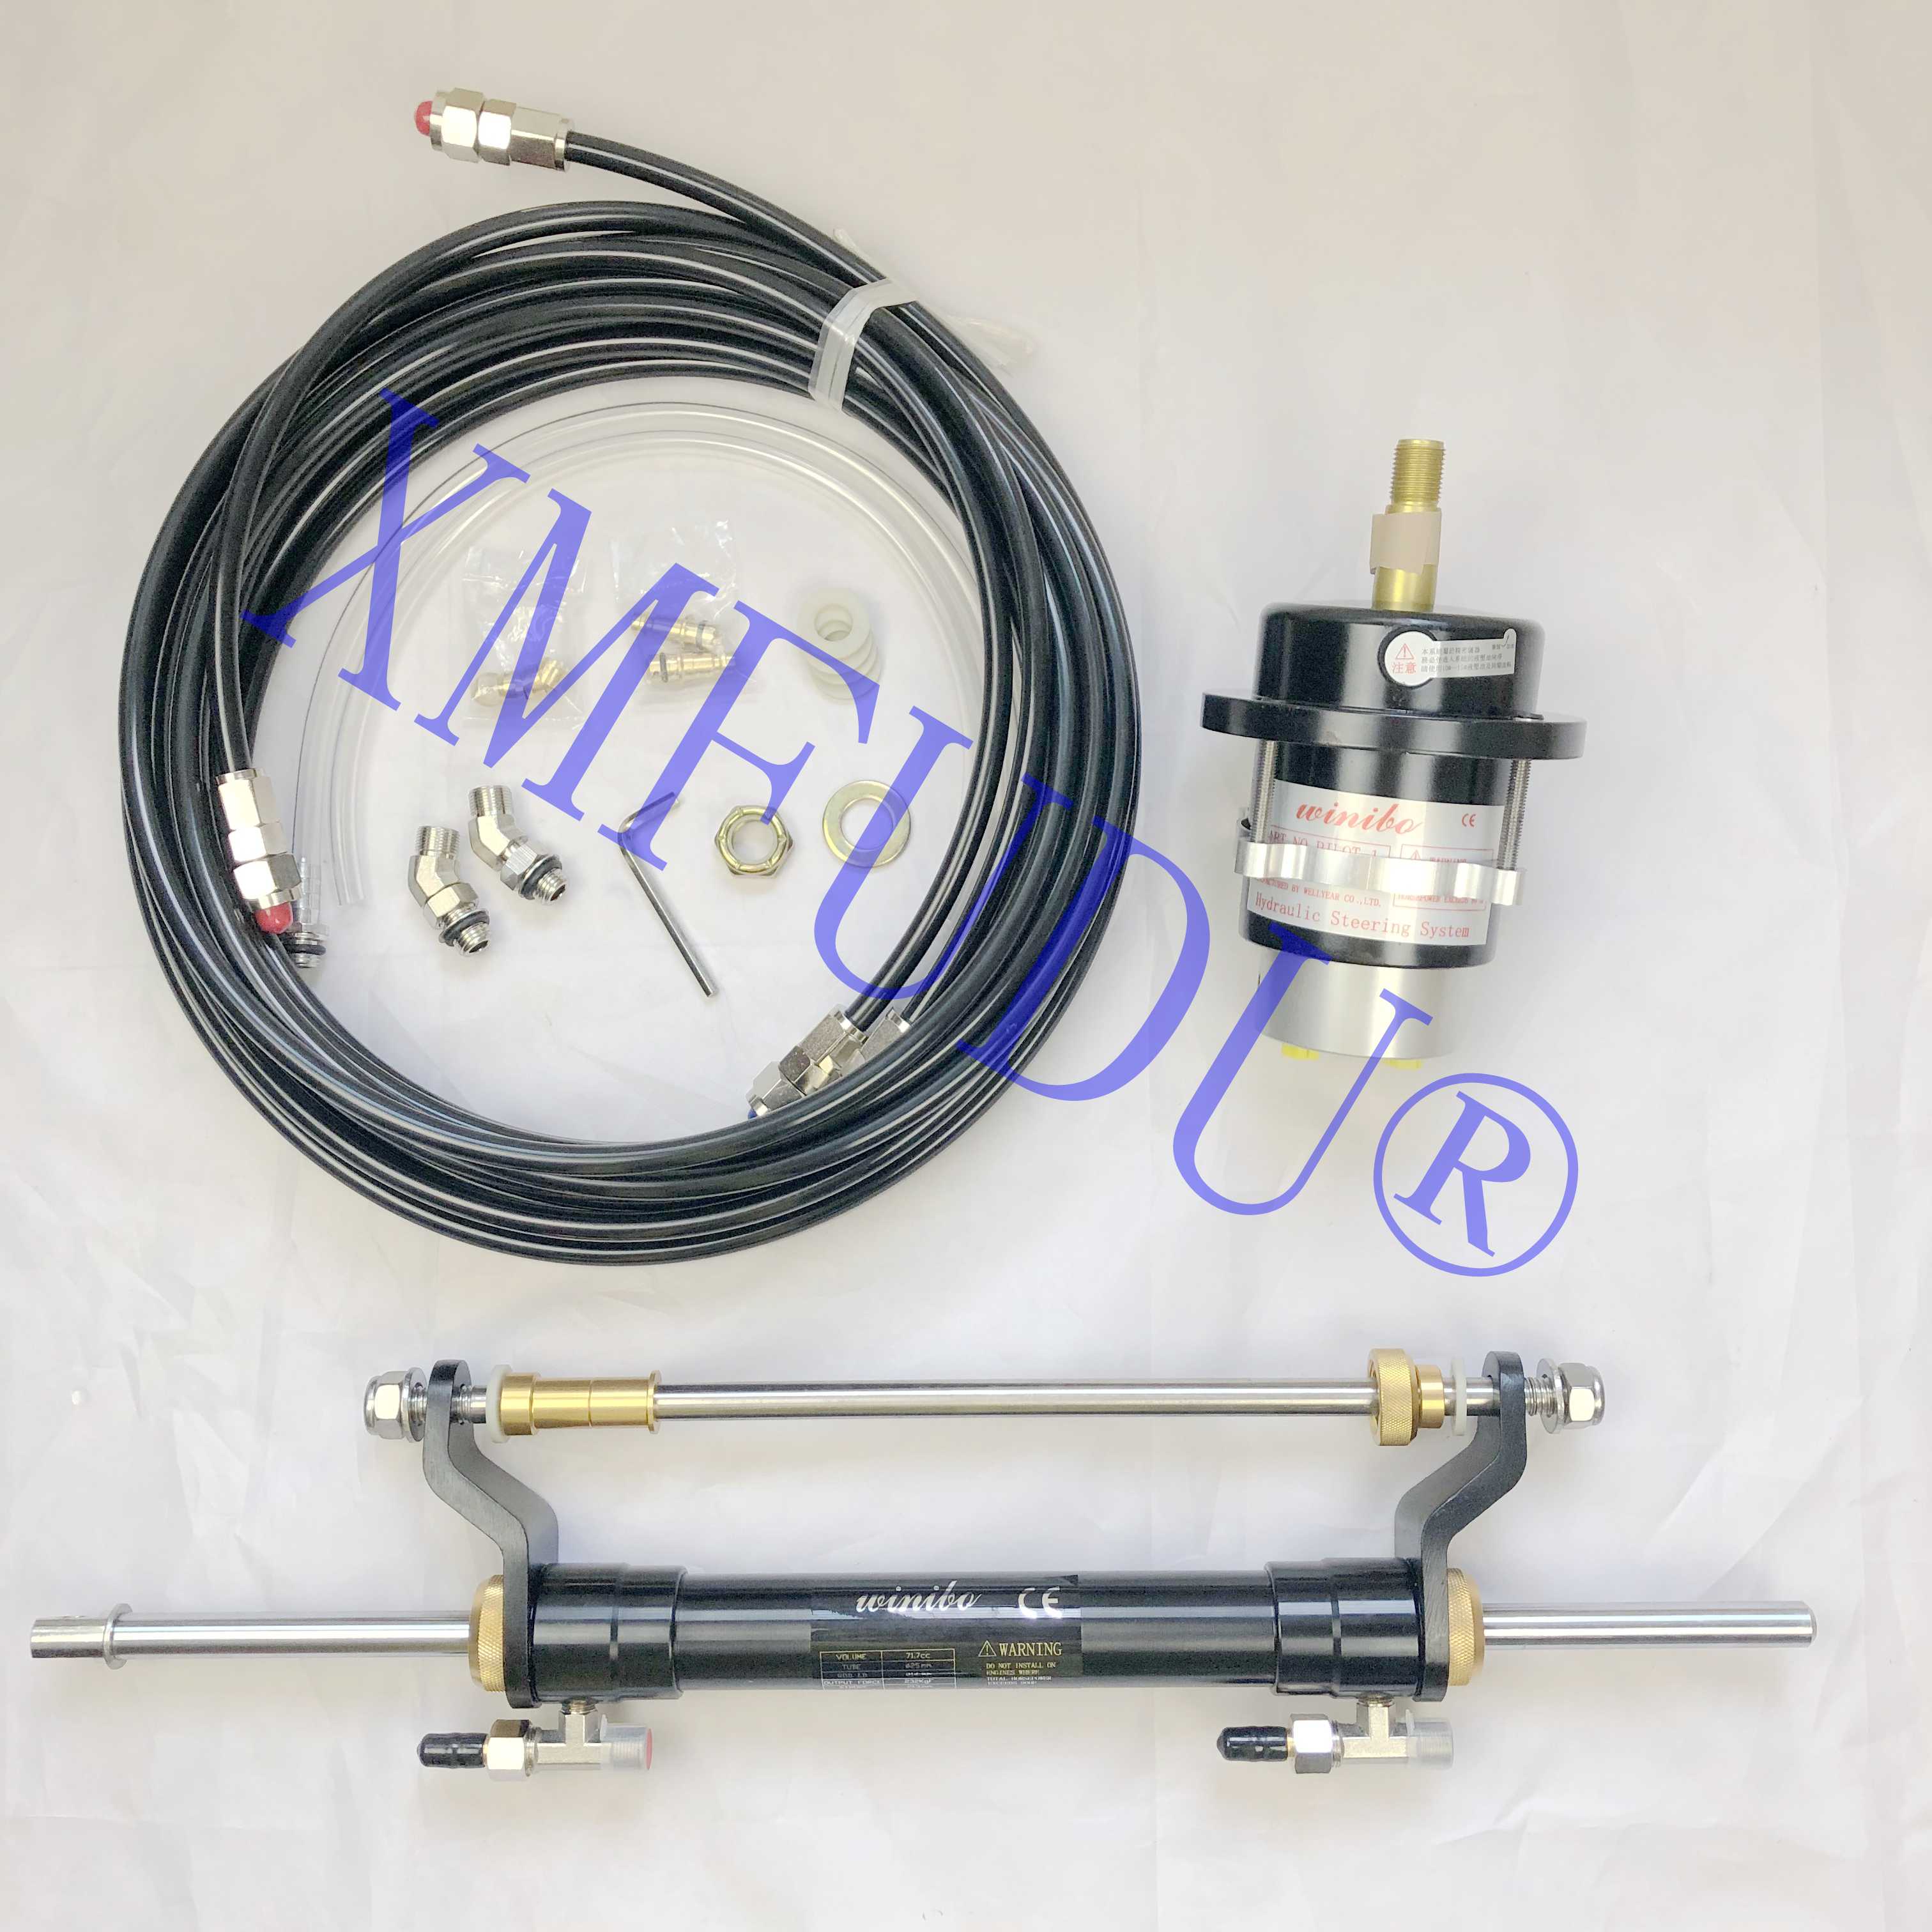 Outboard Hydraulic Steering System For Engines Till 90 HP